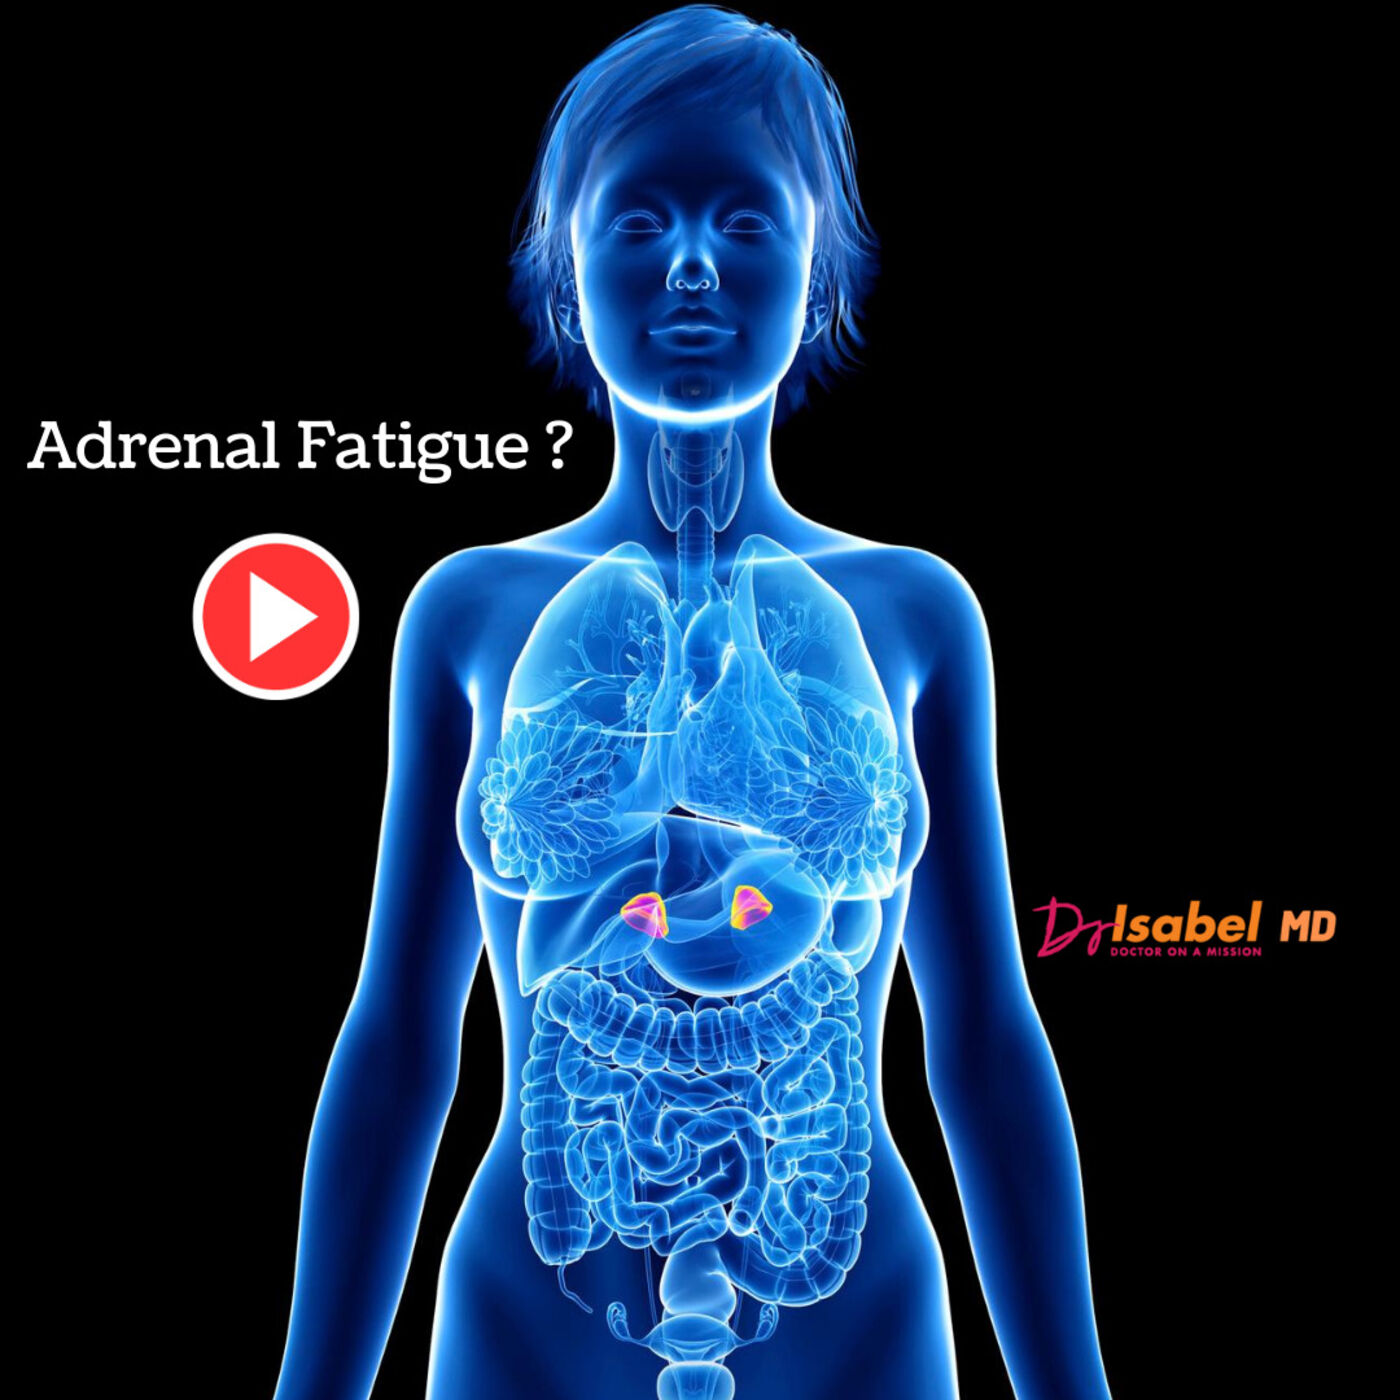 Adrenal Fatigue?